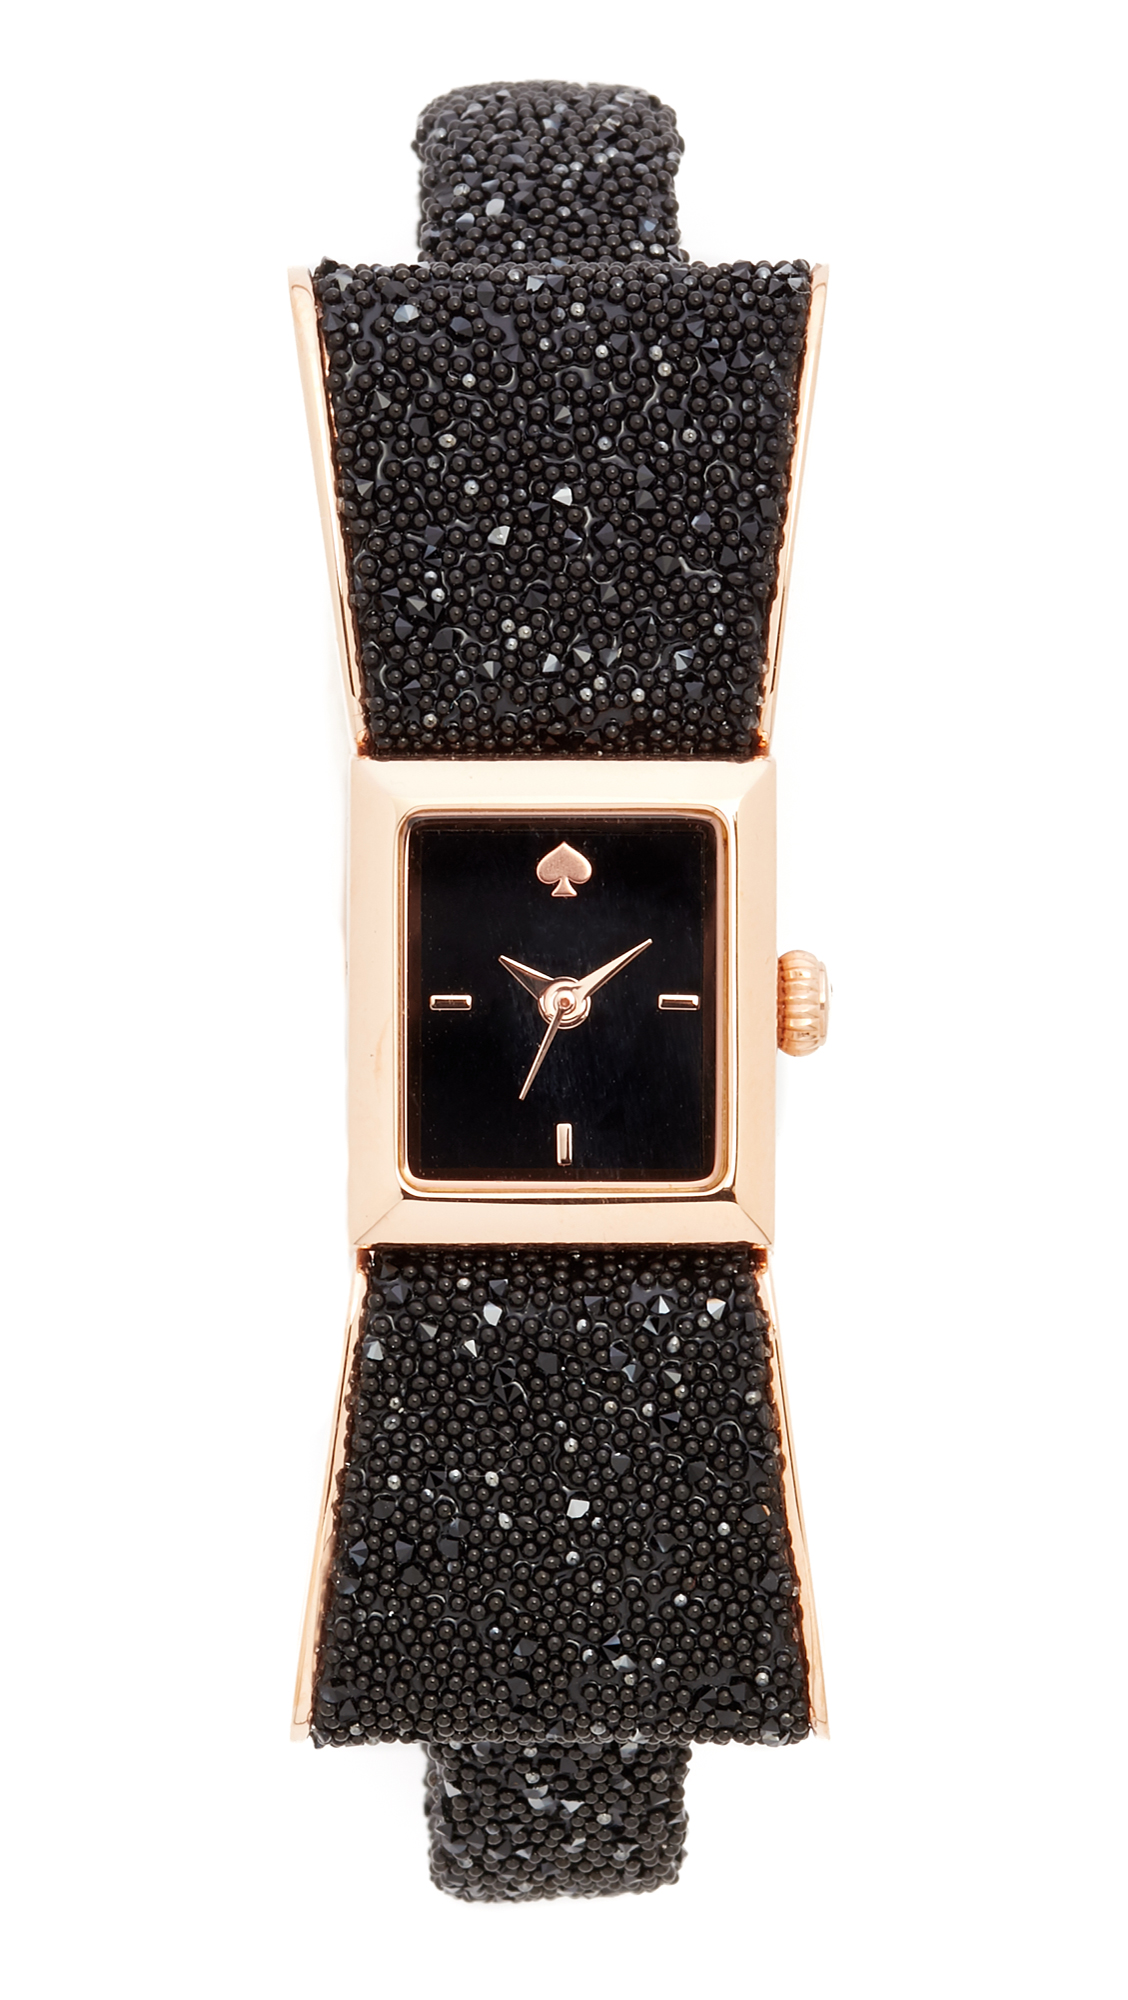 Kate Spade New York Kenmare Watch - Rose Gold at Shopbop